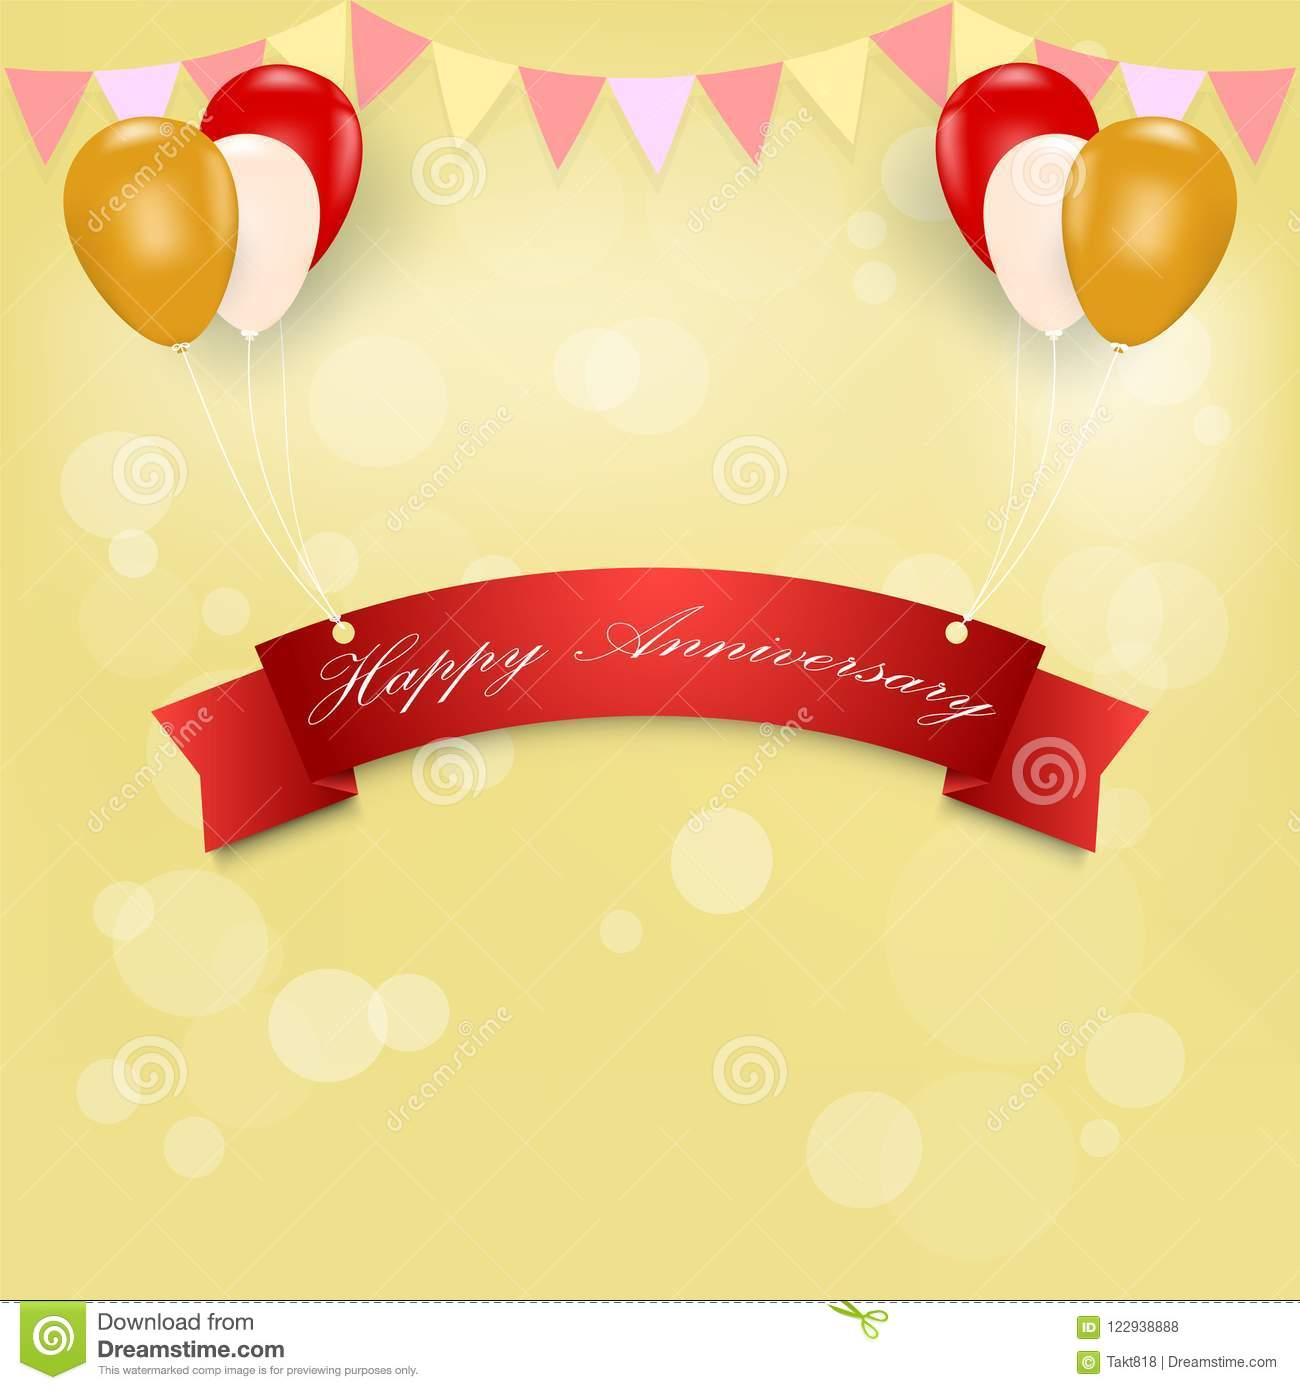 Happy Anniversary With Balloons Greeting Card Stock Vector